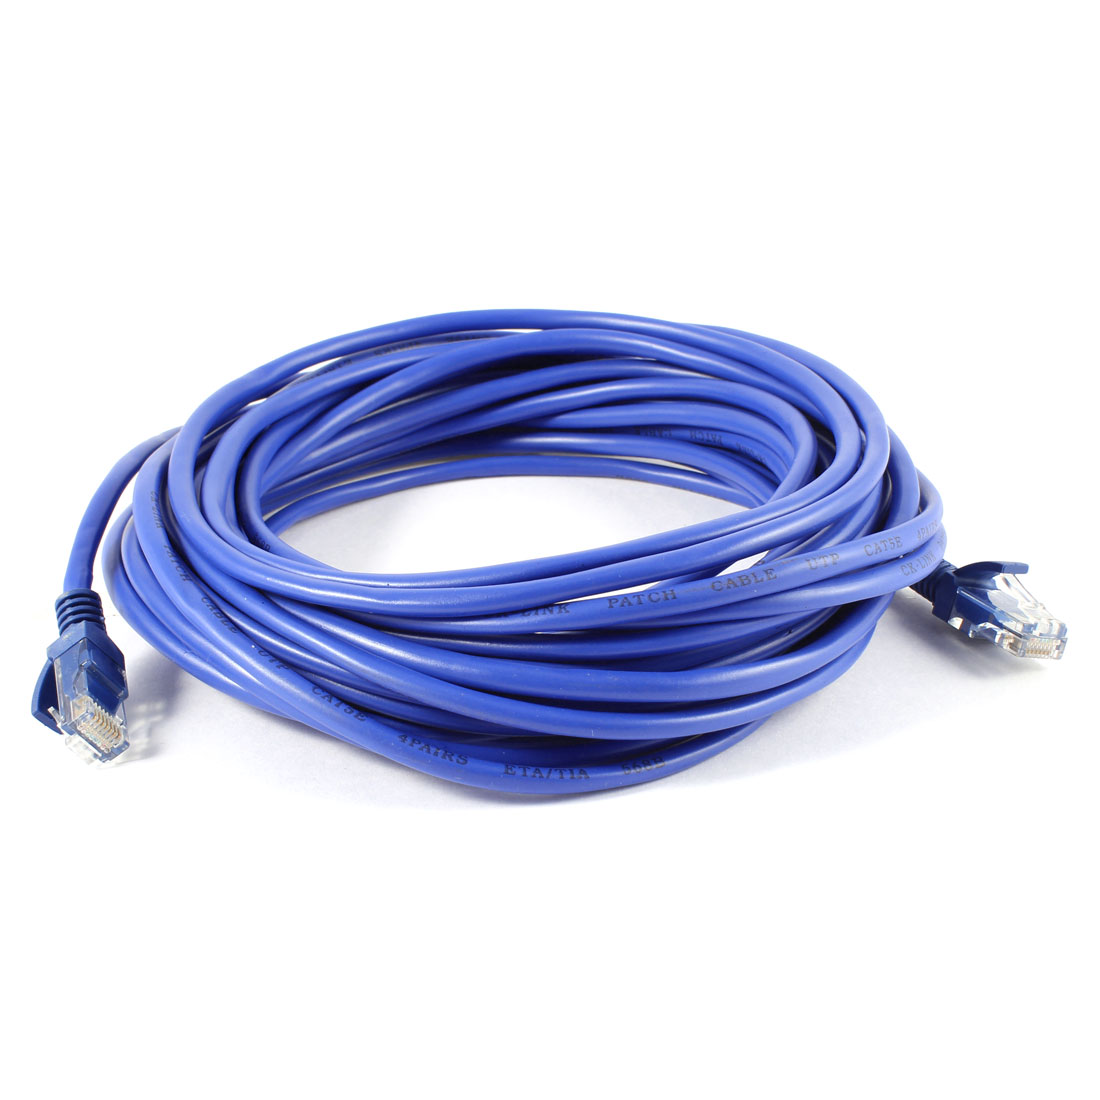 RJ45 Male CAT5E LAN Network Ethernet Cable Wire Cord Blue 10M Length